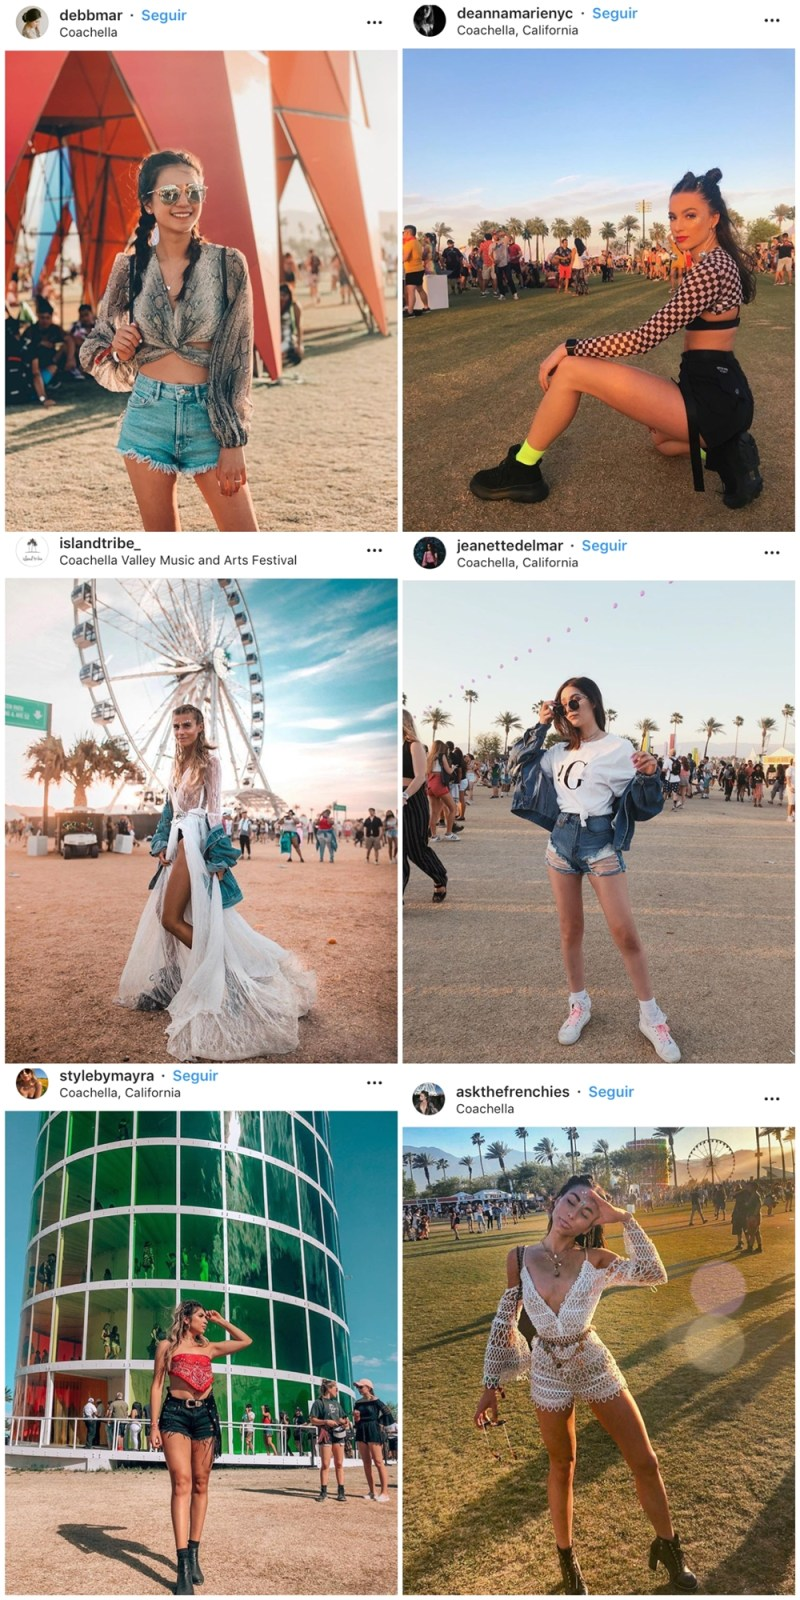 COACHELLA 02 - Os 16 Looks + Incríveis do Coachella 2019